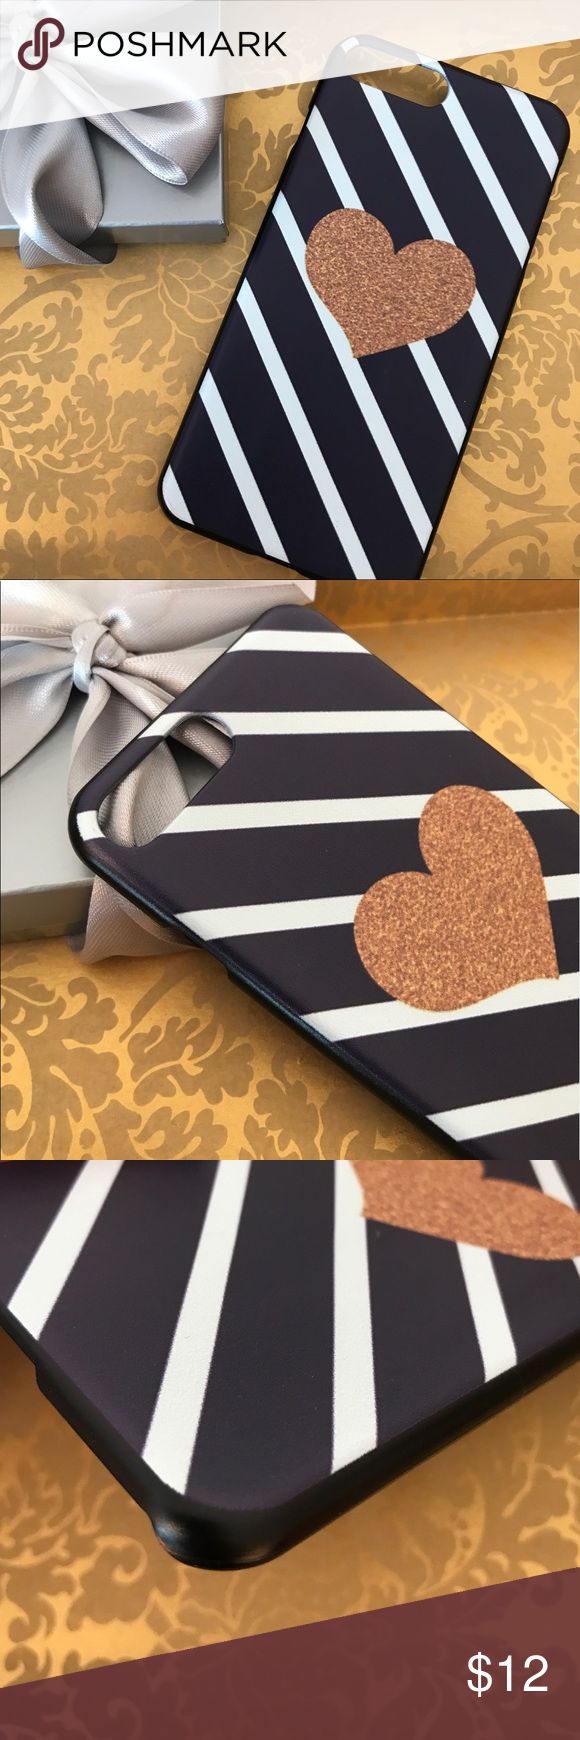 GOLD HEART STRIPE IPHONE 7 7+ PLUS CASE LUXURIOUS GOLD HEART STRIPE IPHONE 7 7+ PLUS CASE LUXURIOUS. 🎀 MADE IN USA 🎀 HARD PLASTIC CASE 🎀 HOGH BOUTIQUE QUALITY 🎀 PICTURE OF THE ACTUAL ITEM Accessories Phone Cases